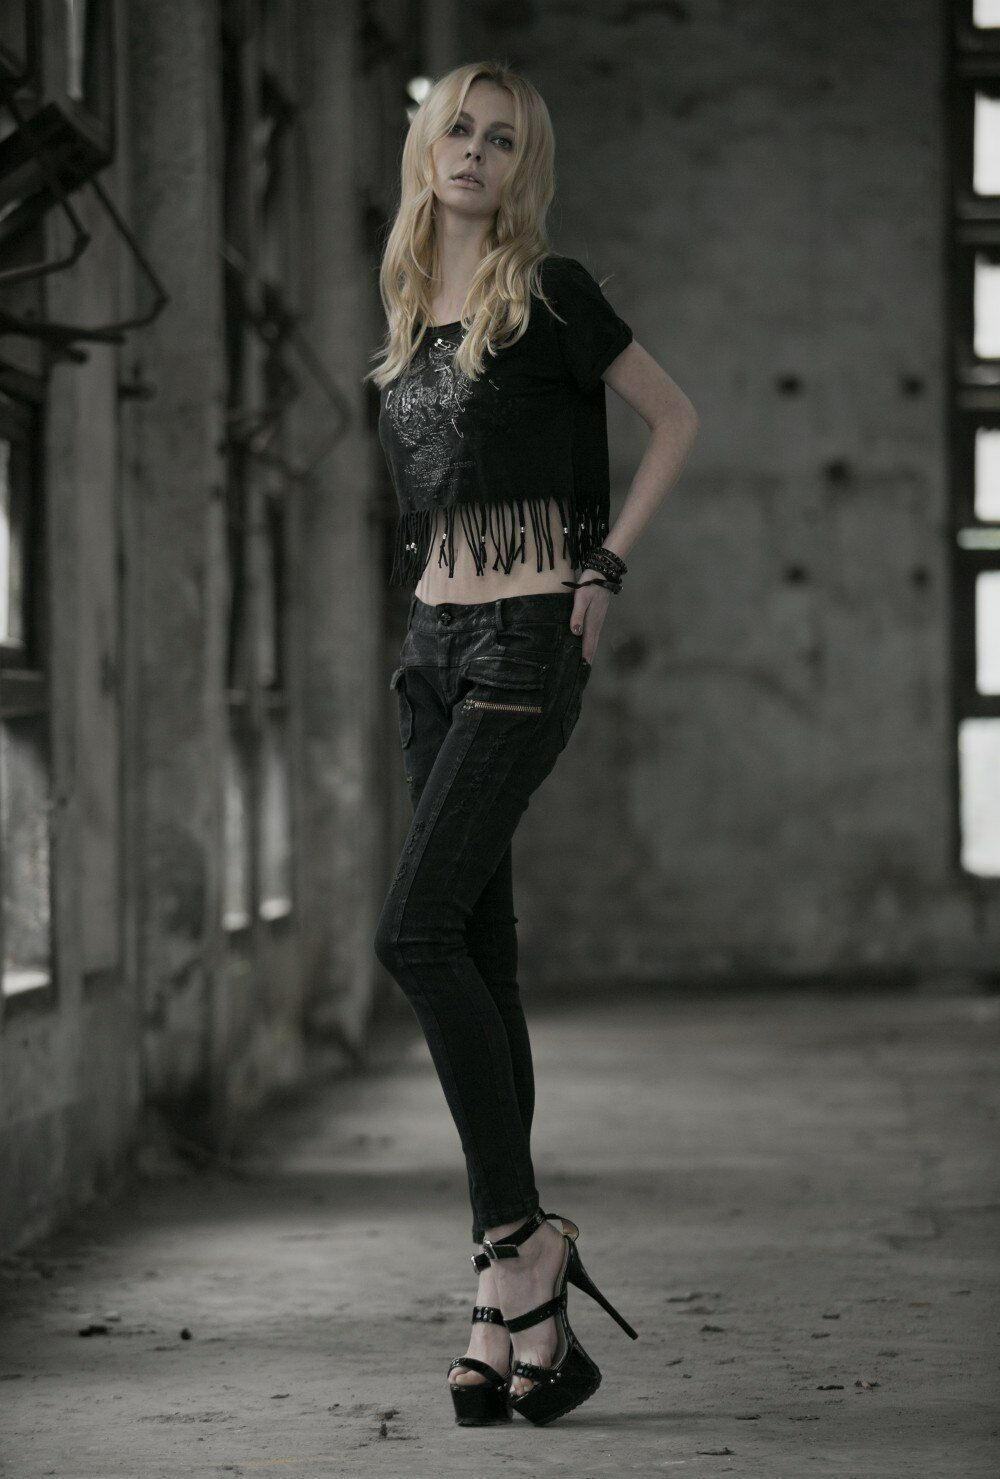 Donna JEANS NERO DESTROYED PANTS punk rave gothic Kei mode mode mode 35f0a0